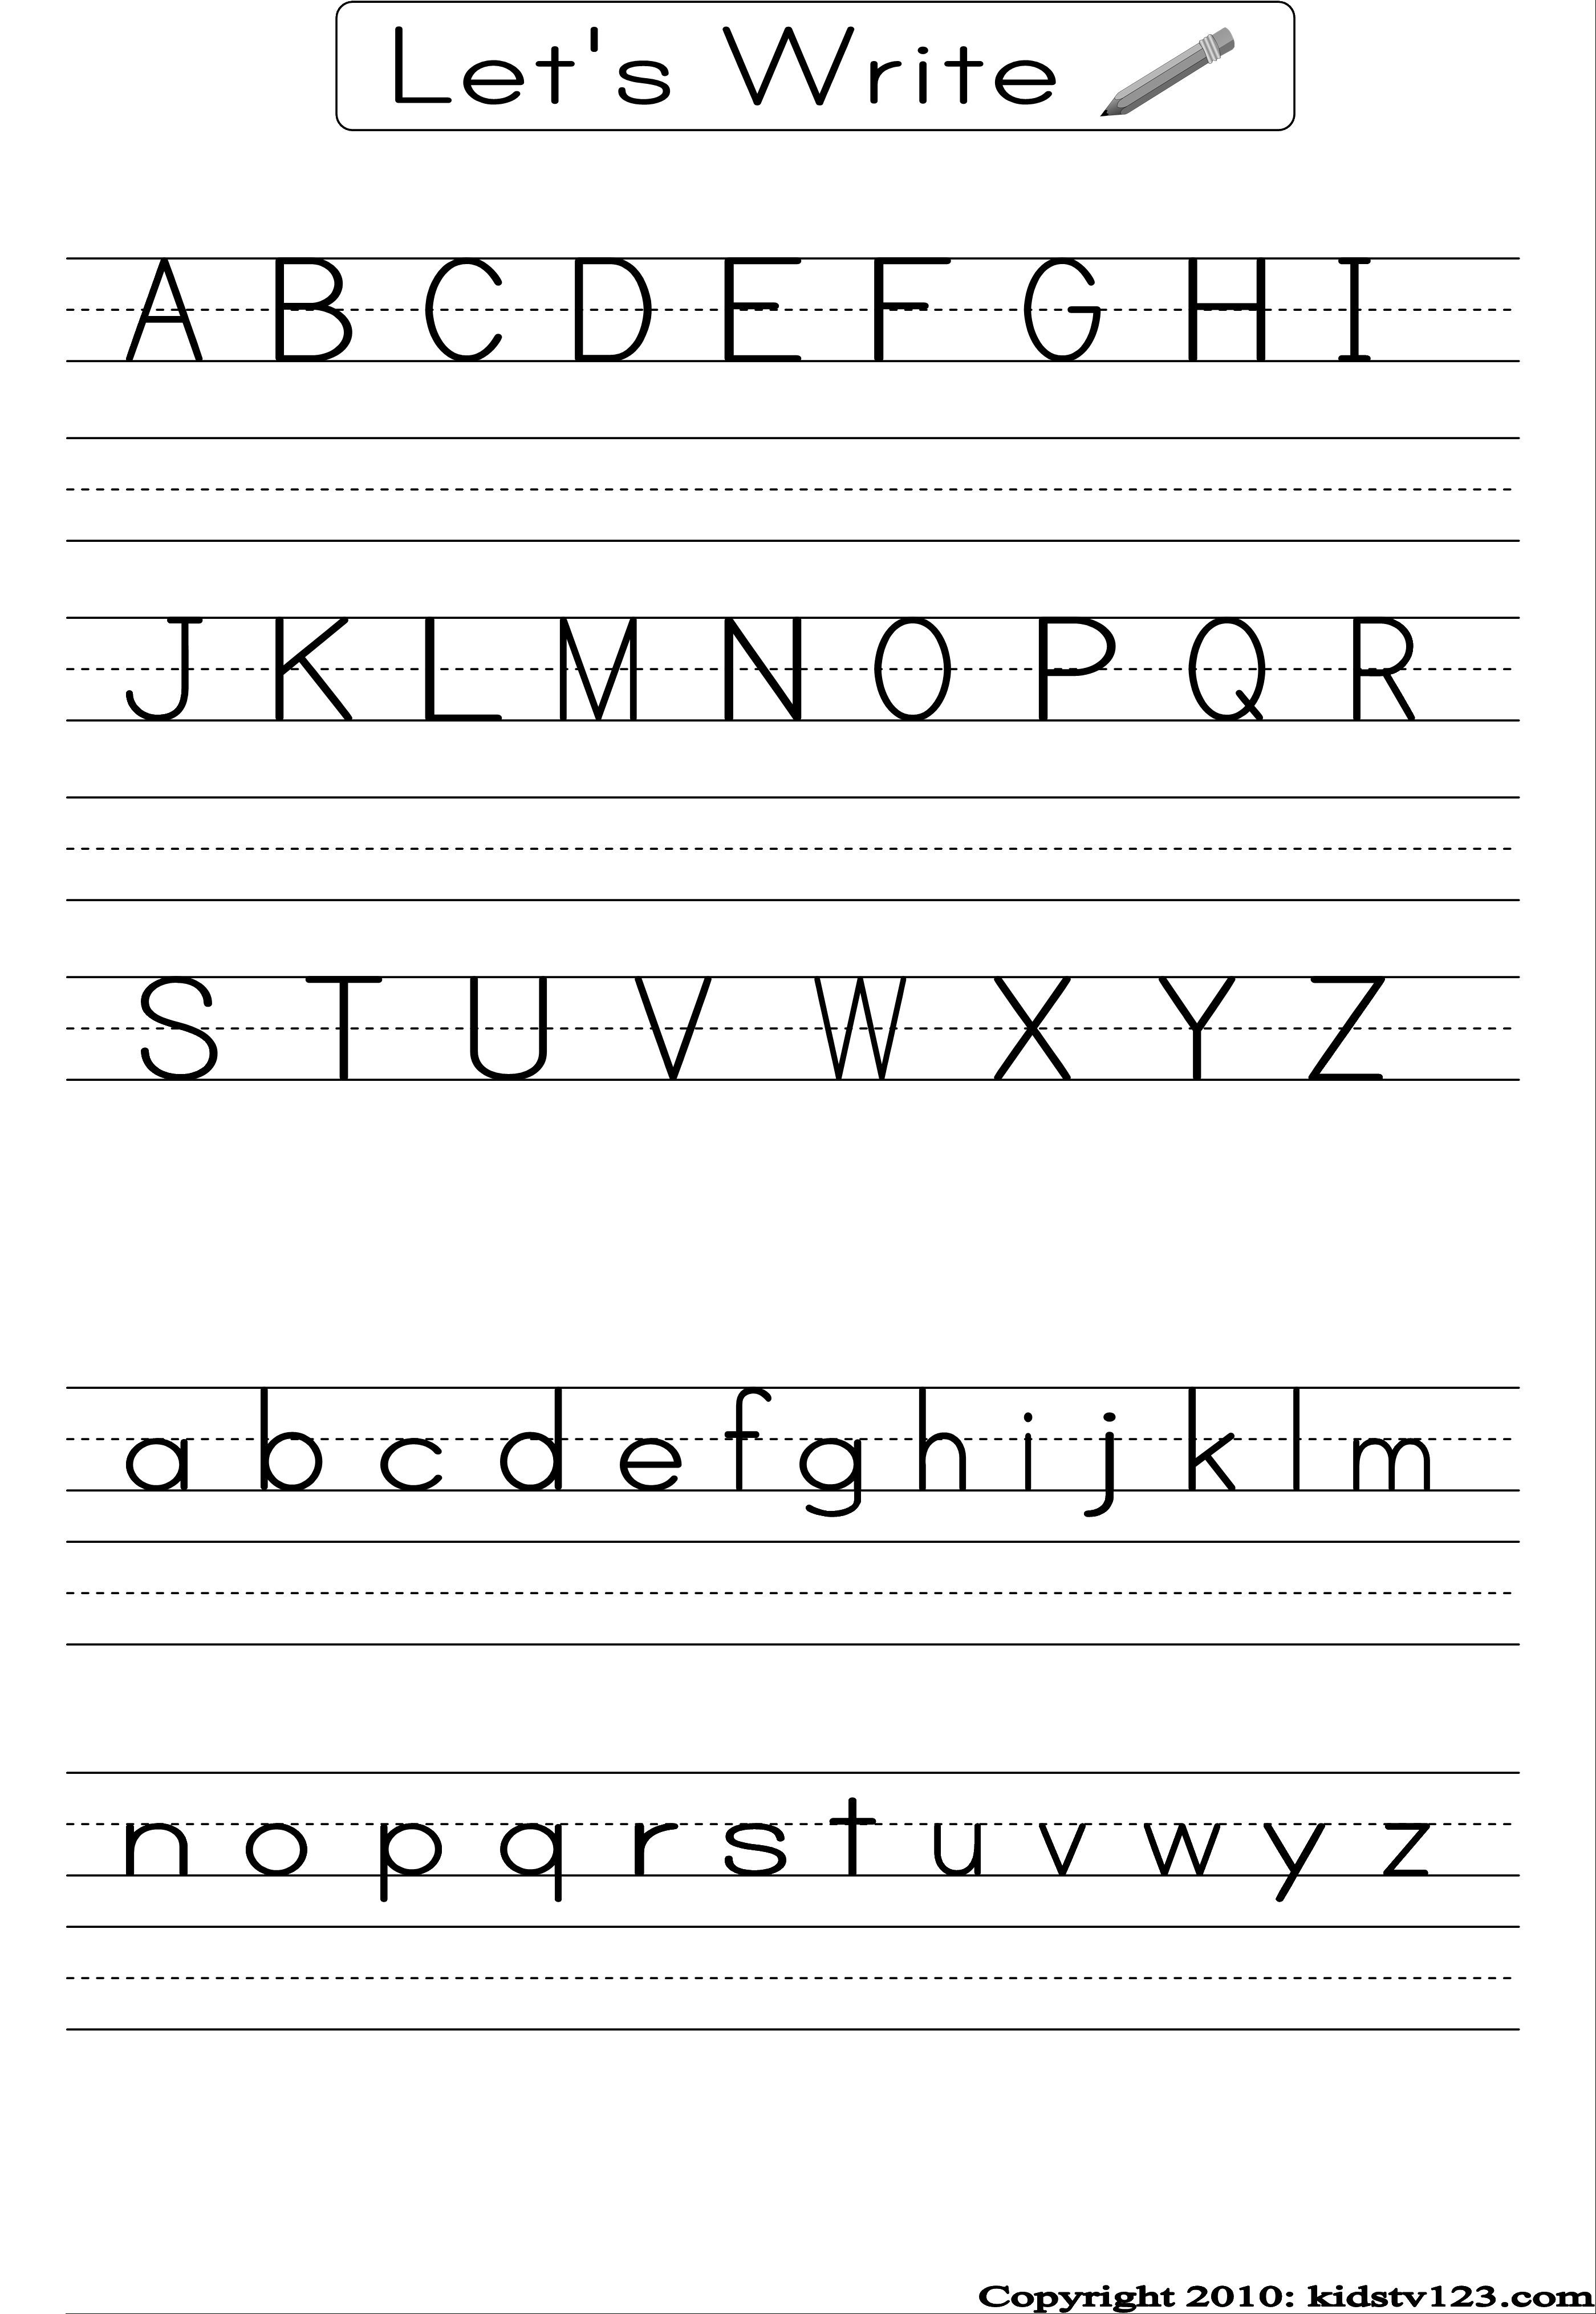 Alphabet Writing Practice Sheet | Alphabet Reinforcement | Alphabet | Free Printable Handwriting Worksheets For Kids